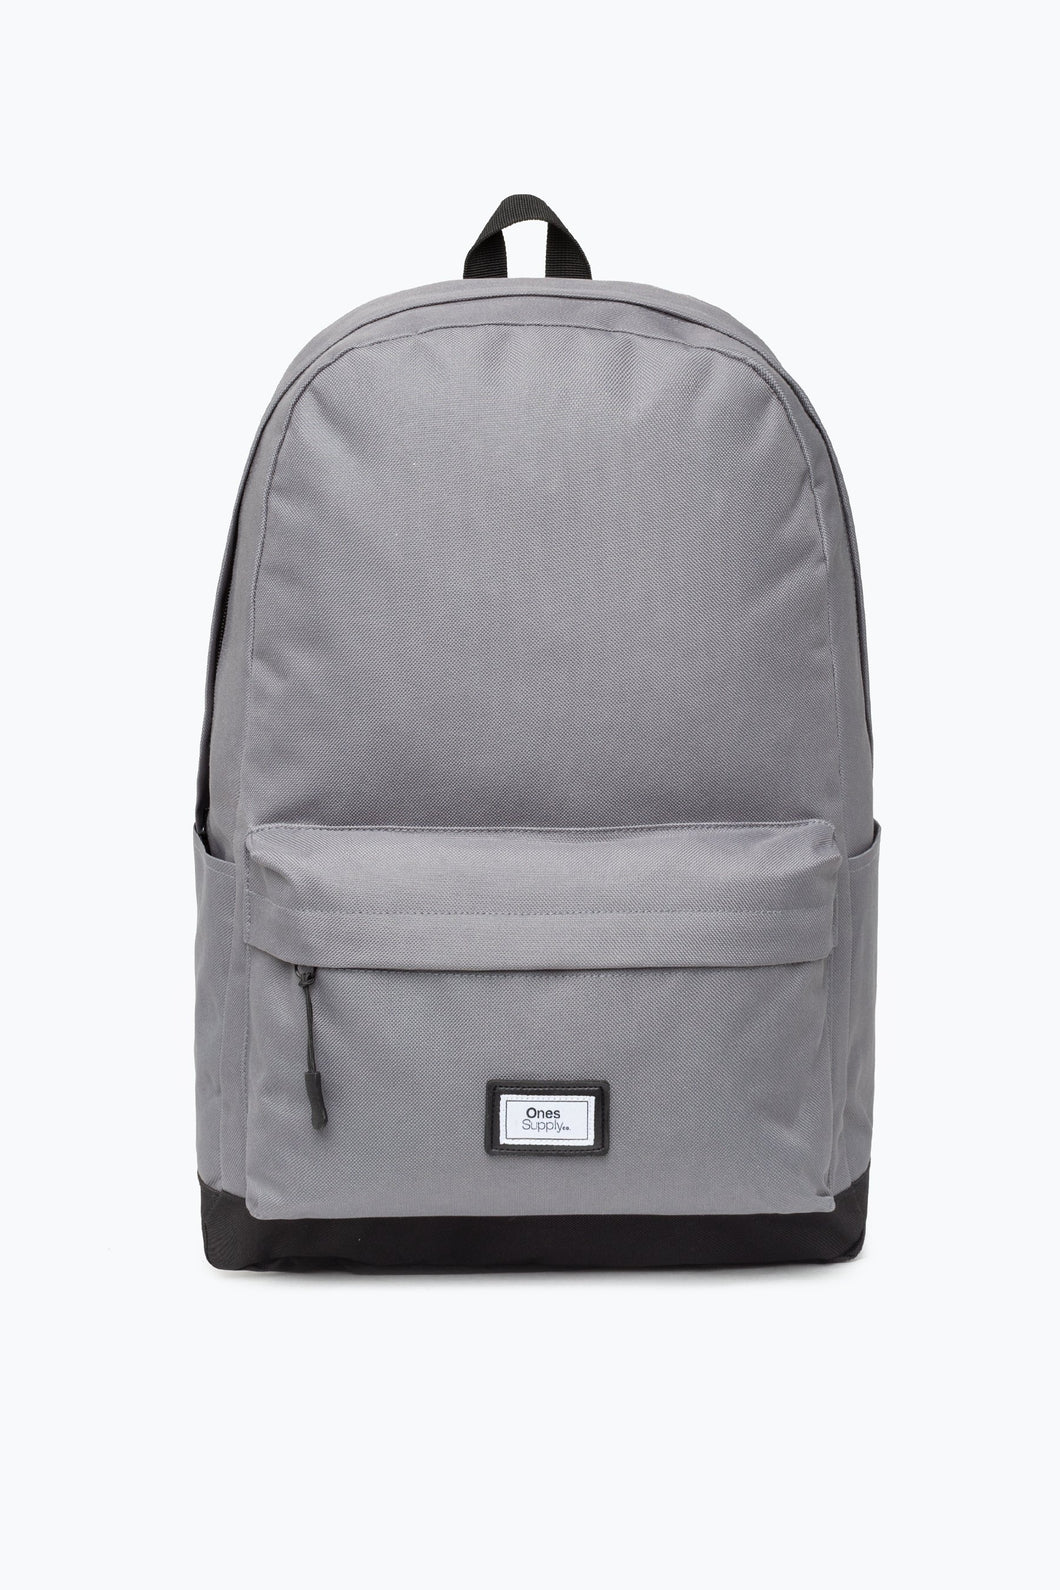 SOLID GREY CORE BACKPACK